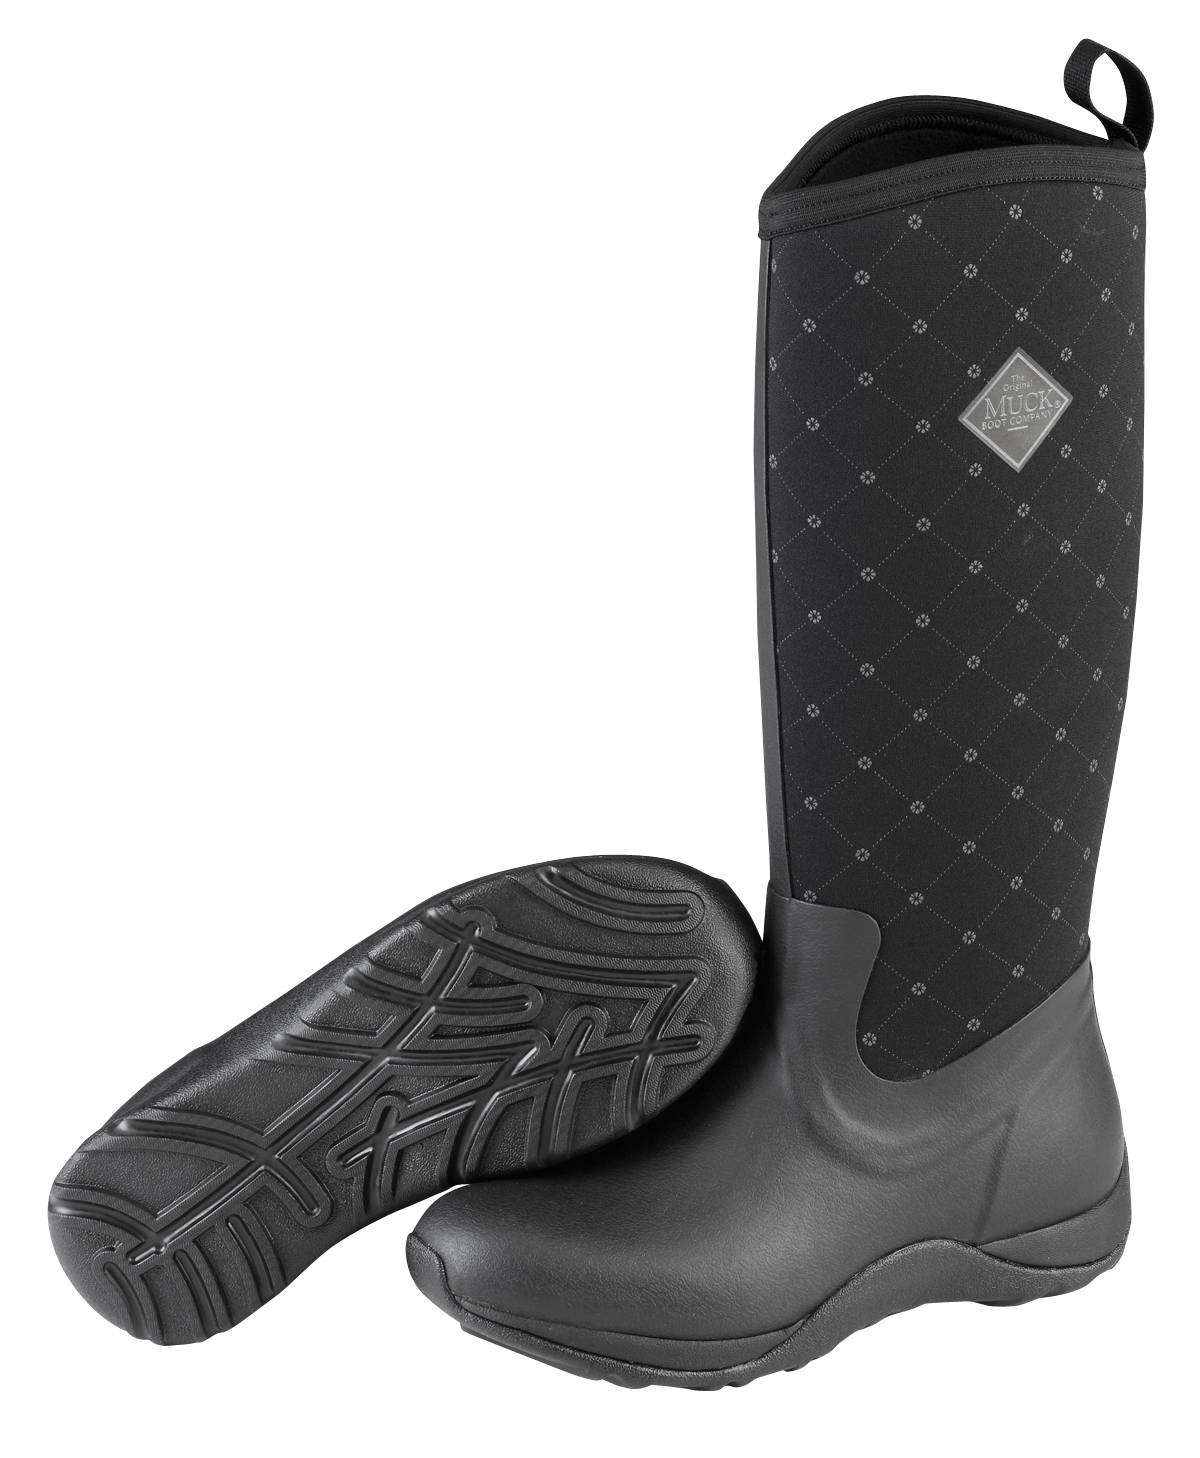 Muck Boots Arctic Adventure Boots - Ladies - Black Quilt